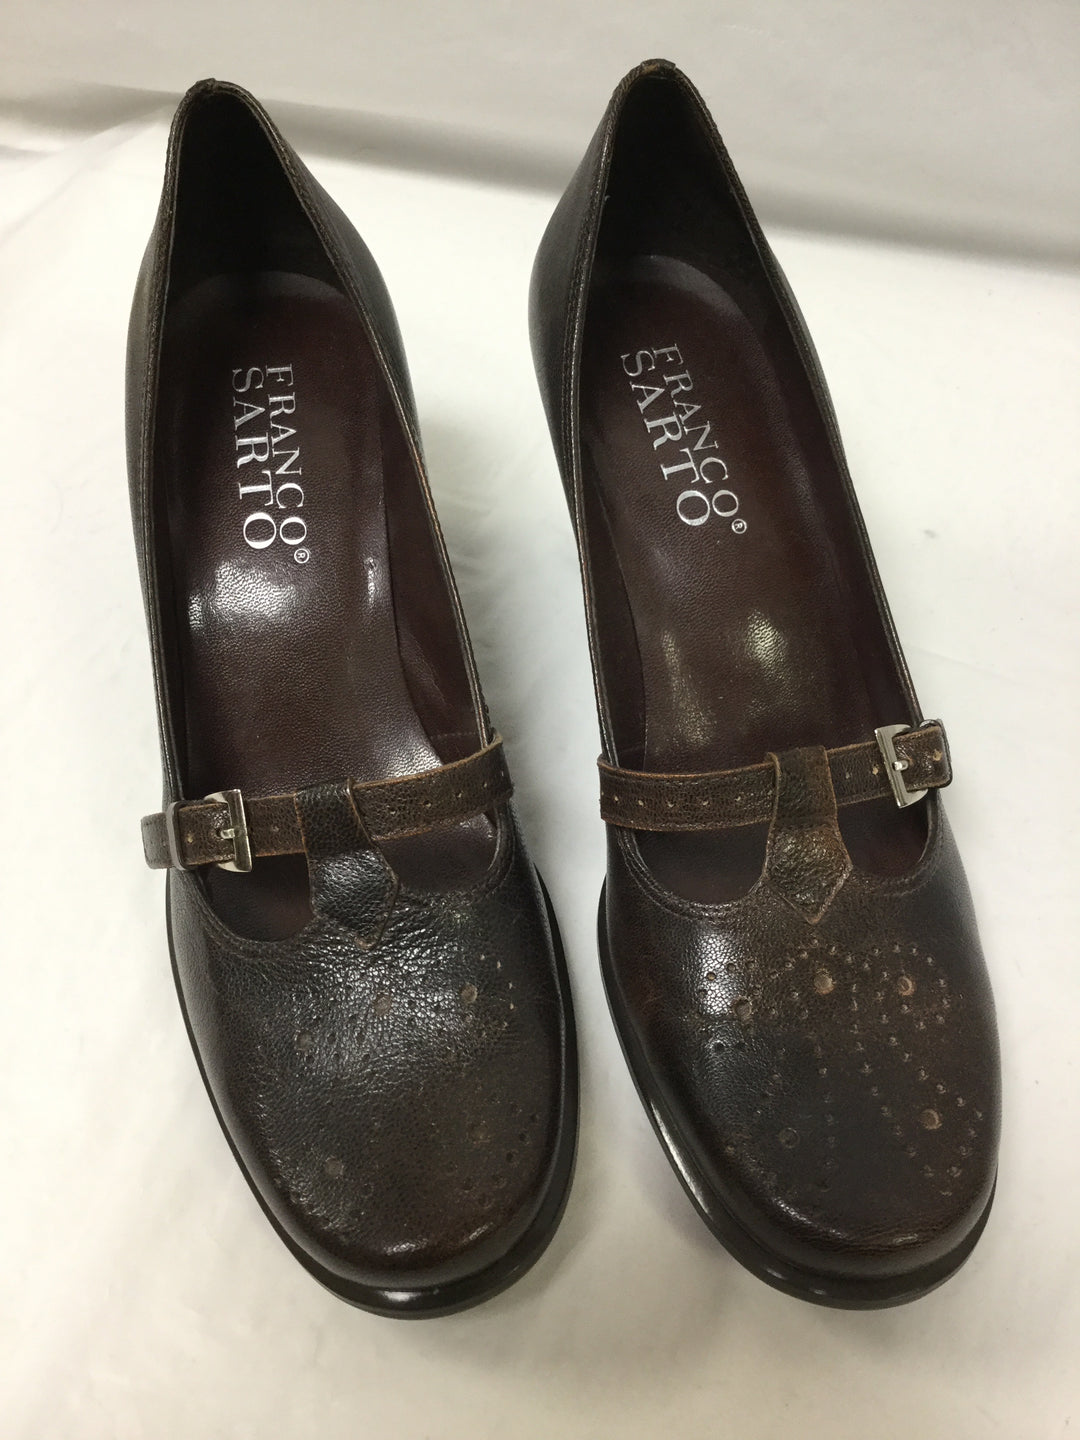 Primary Photo - BRAND: FRANCO SARTO <BR>STYLE: SHOES HIGH HEEL <BR>COLOR: BROWN <BR>SIZE: 7.5 <BR>OTHER INFO: SMALL SCUFF ON BACK <BR>SKU: 155-155224-6473